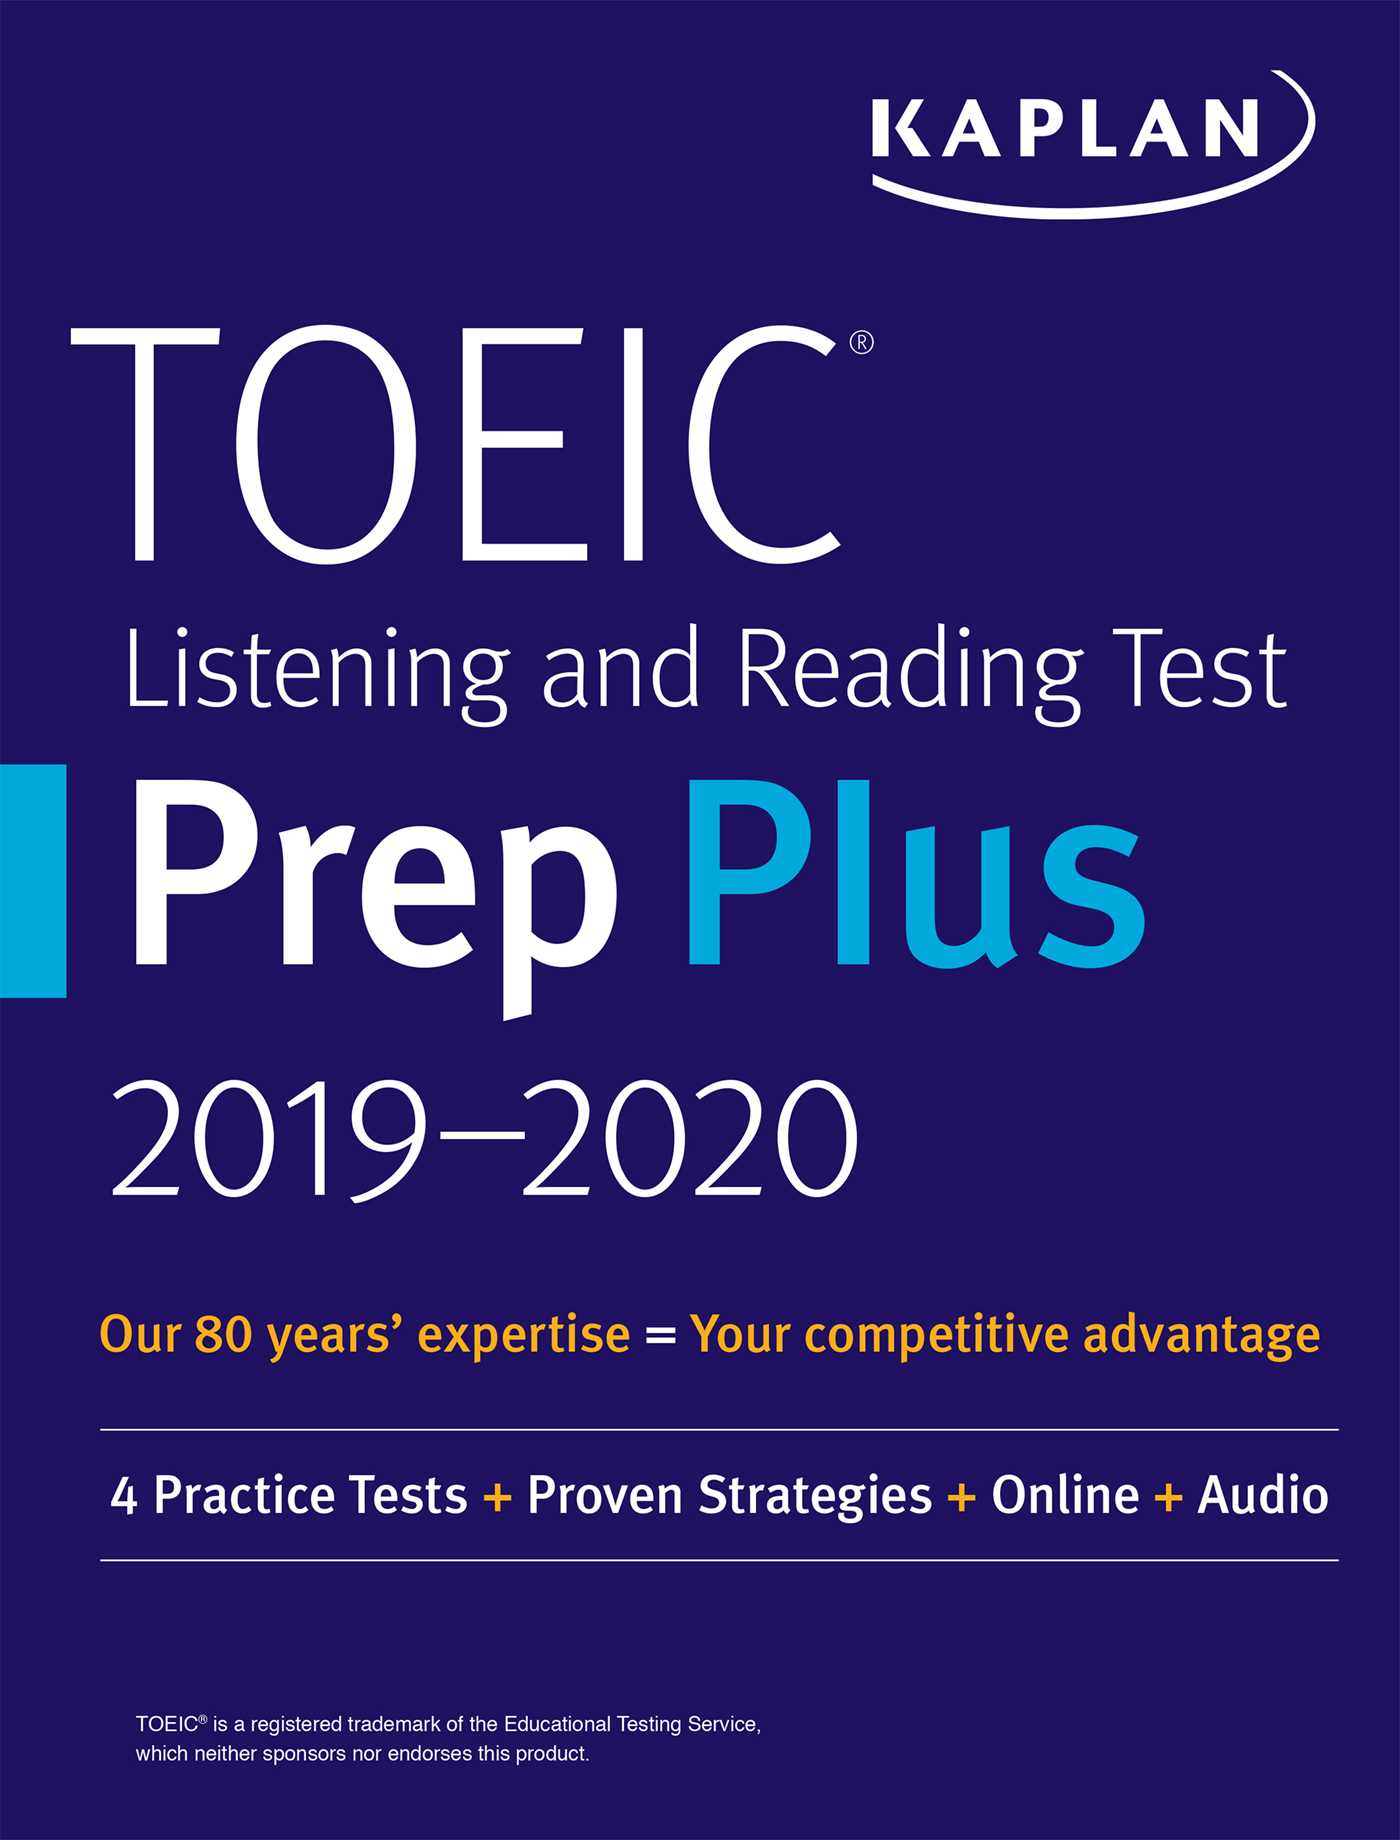 Toeic Listening And Reading Test Prep Plus 2019 2020 Book By